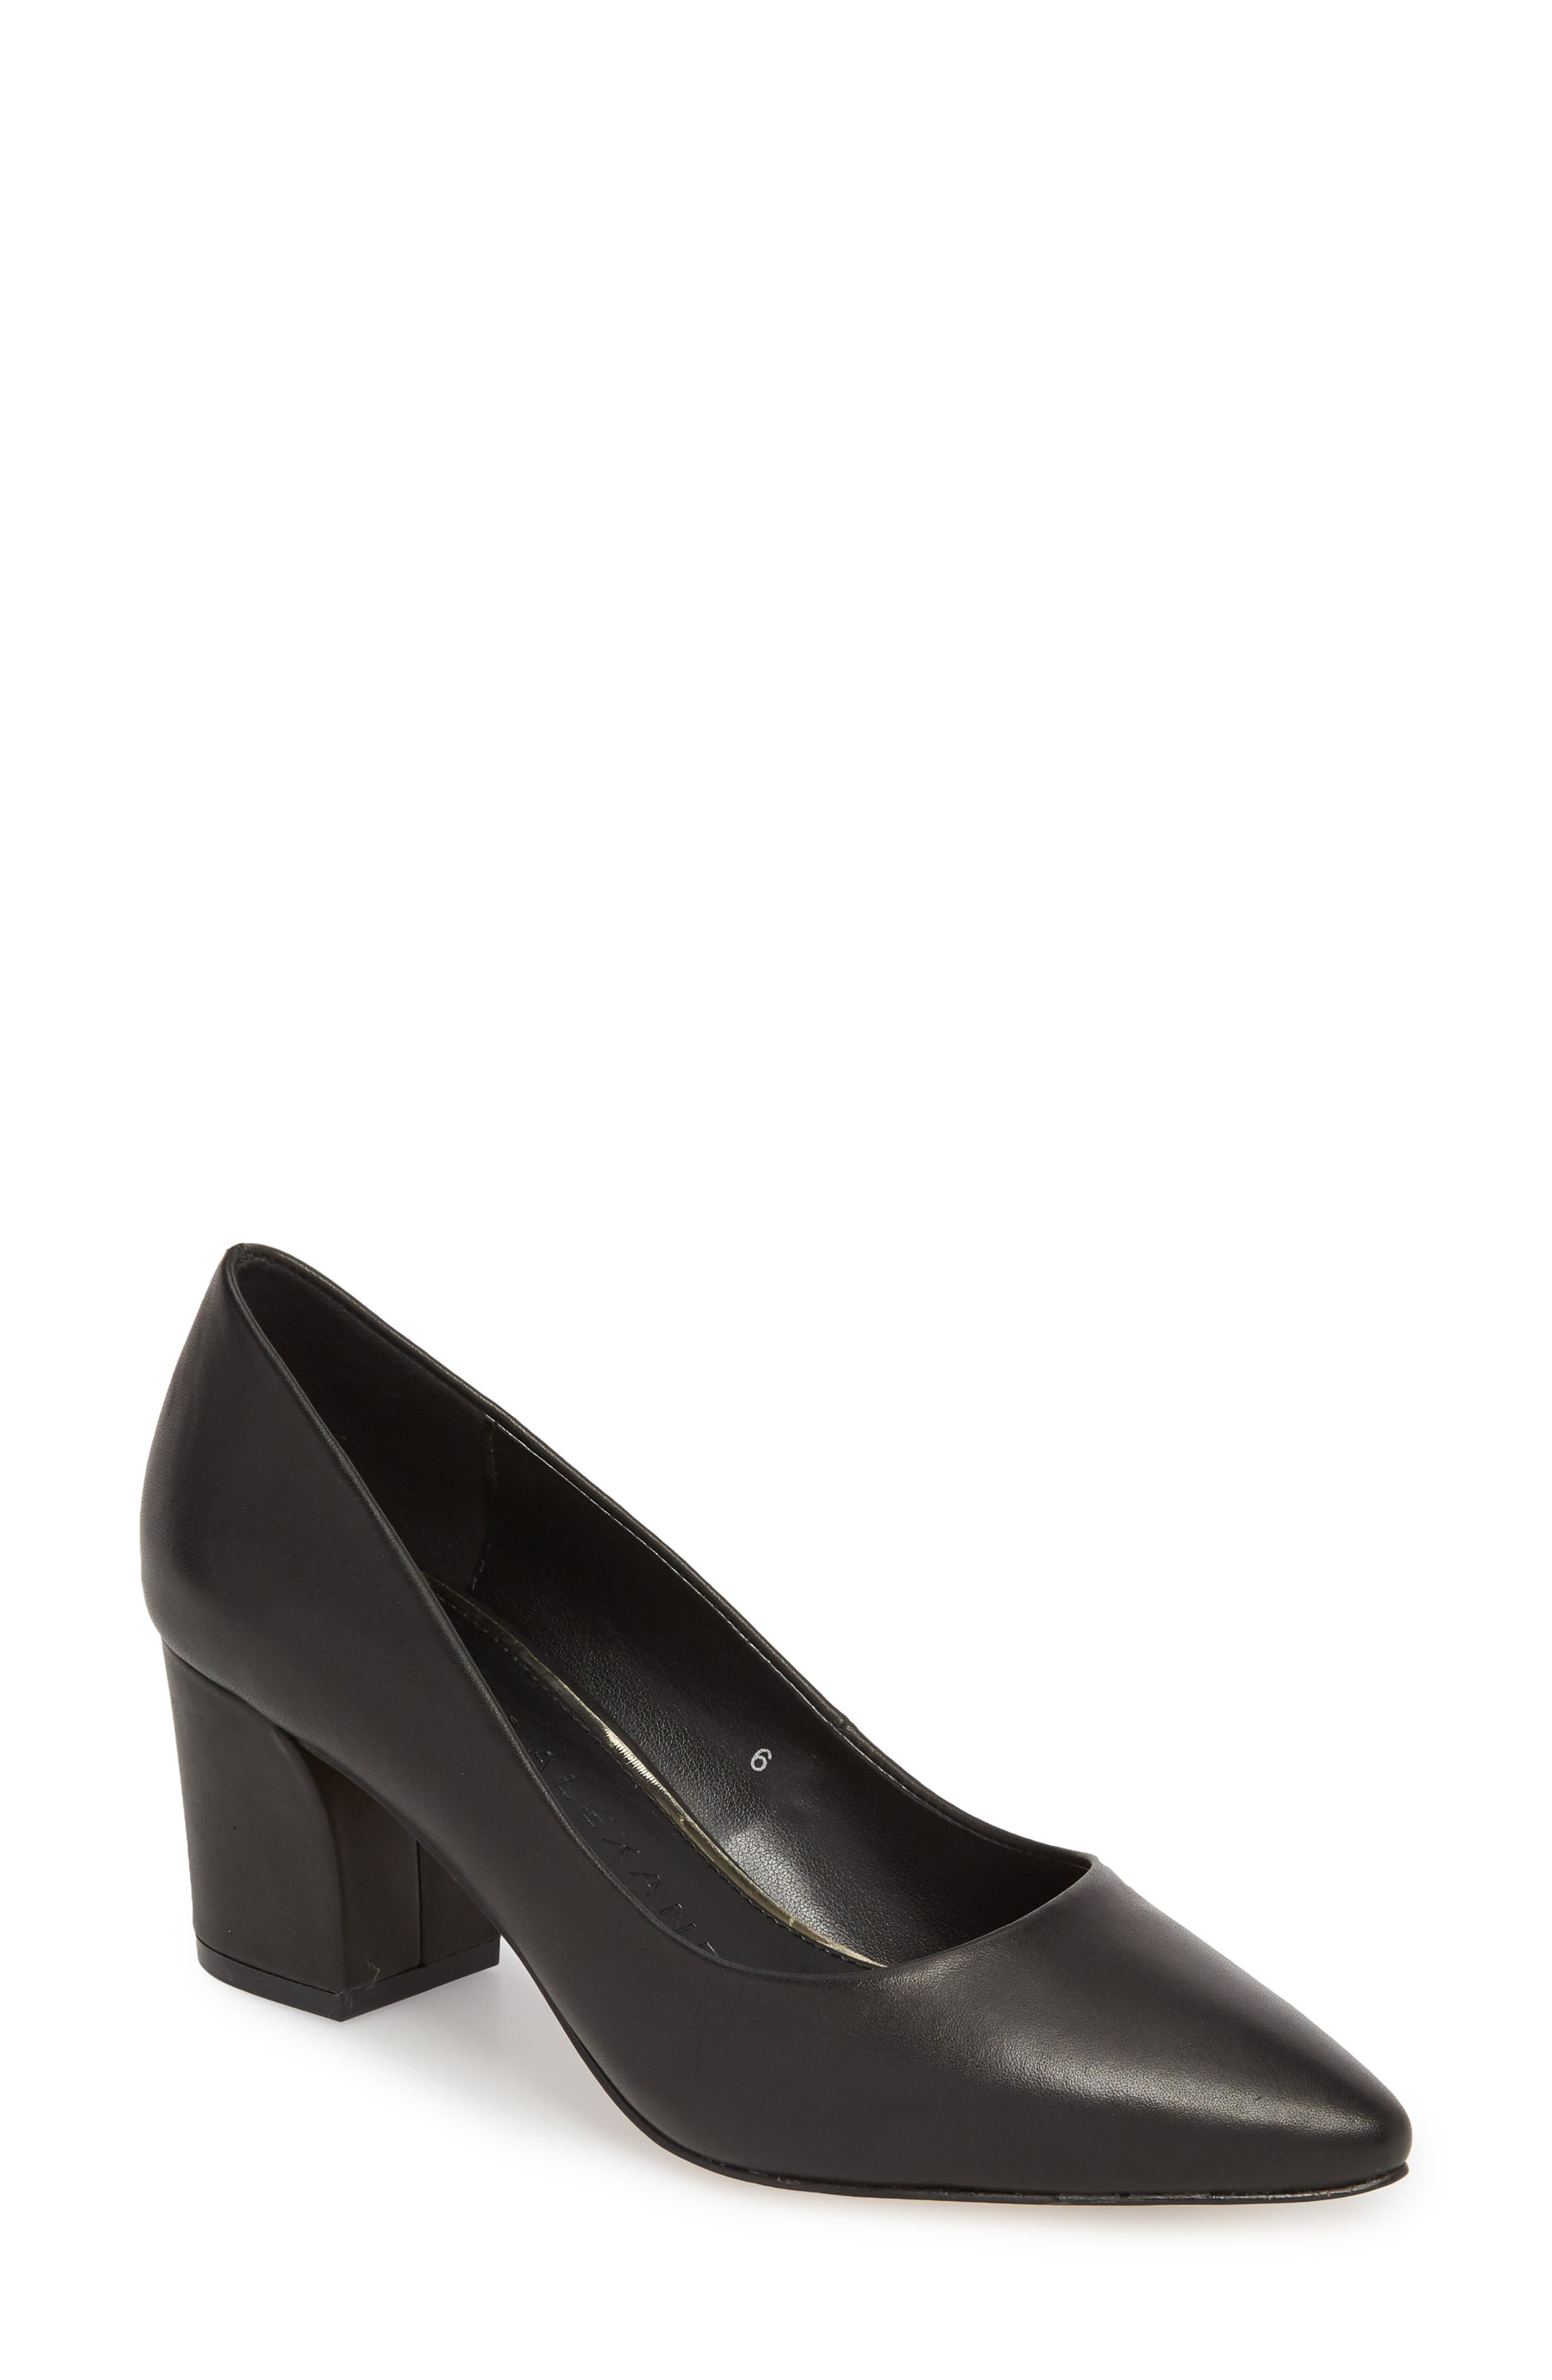 Haven Block Heel Pump,                         Main,                         color, Black Leather